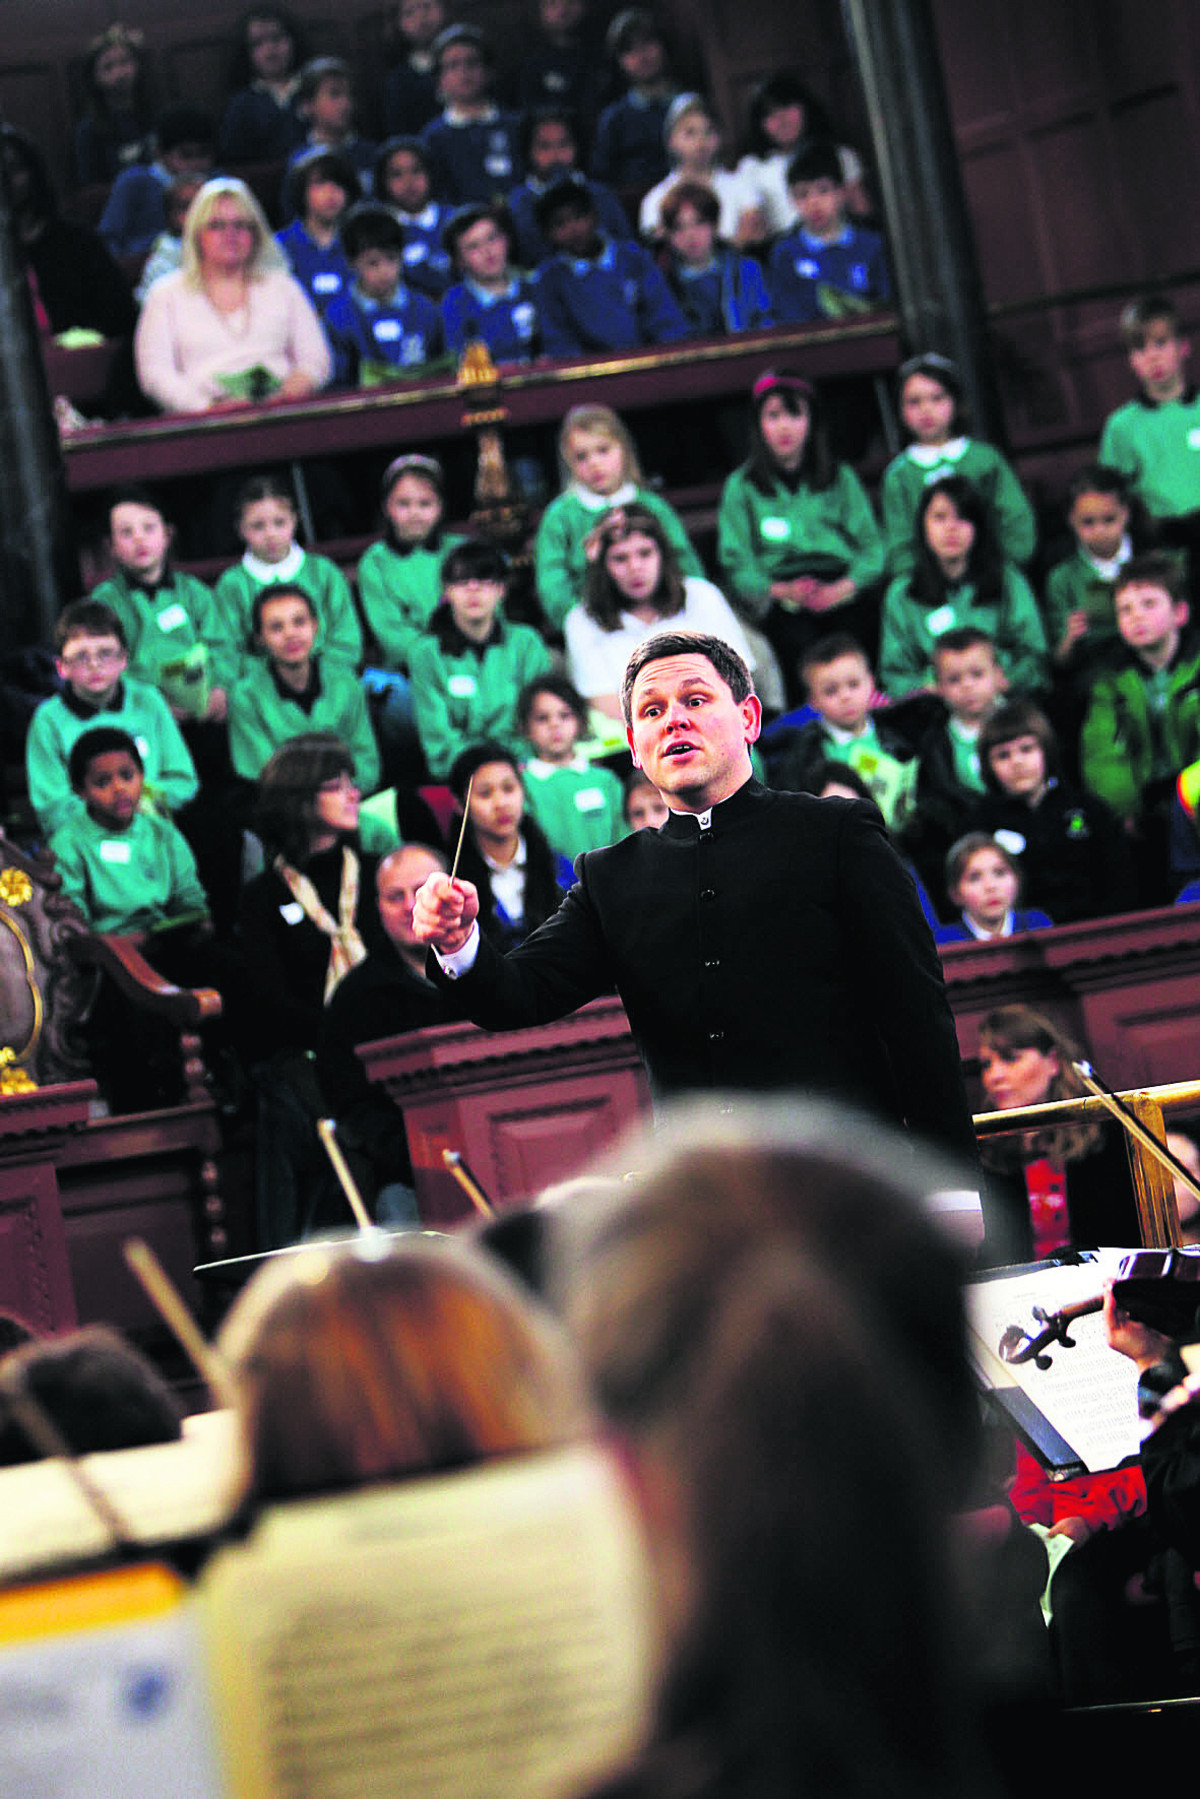 John Traill, who conducts the county's youth orchestra